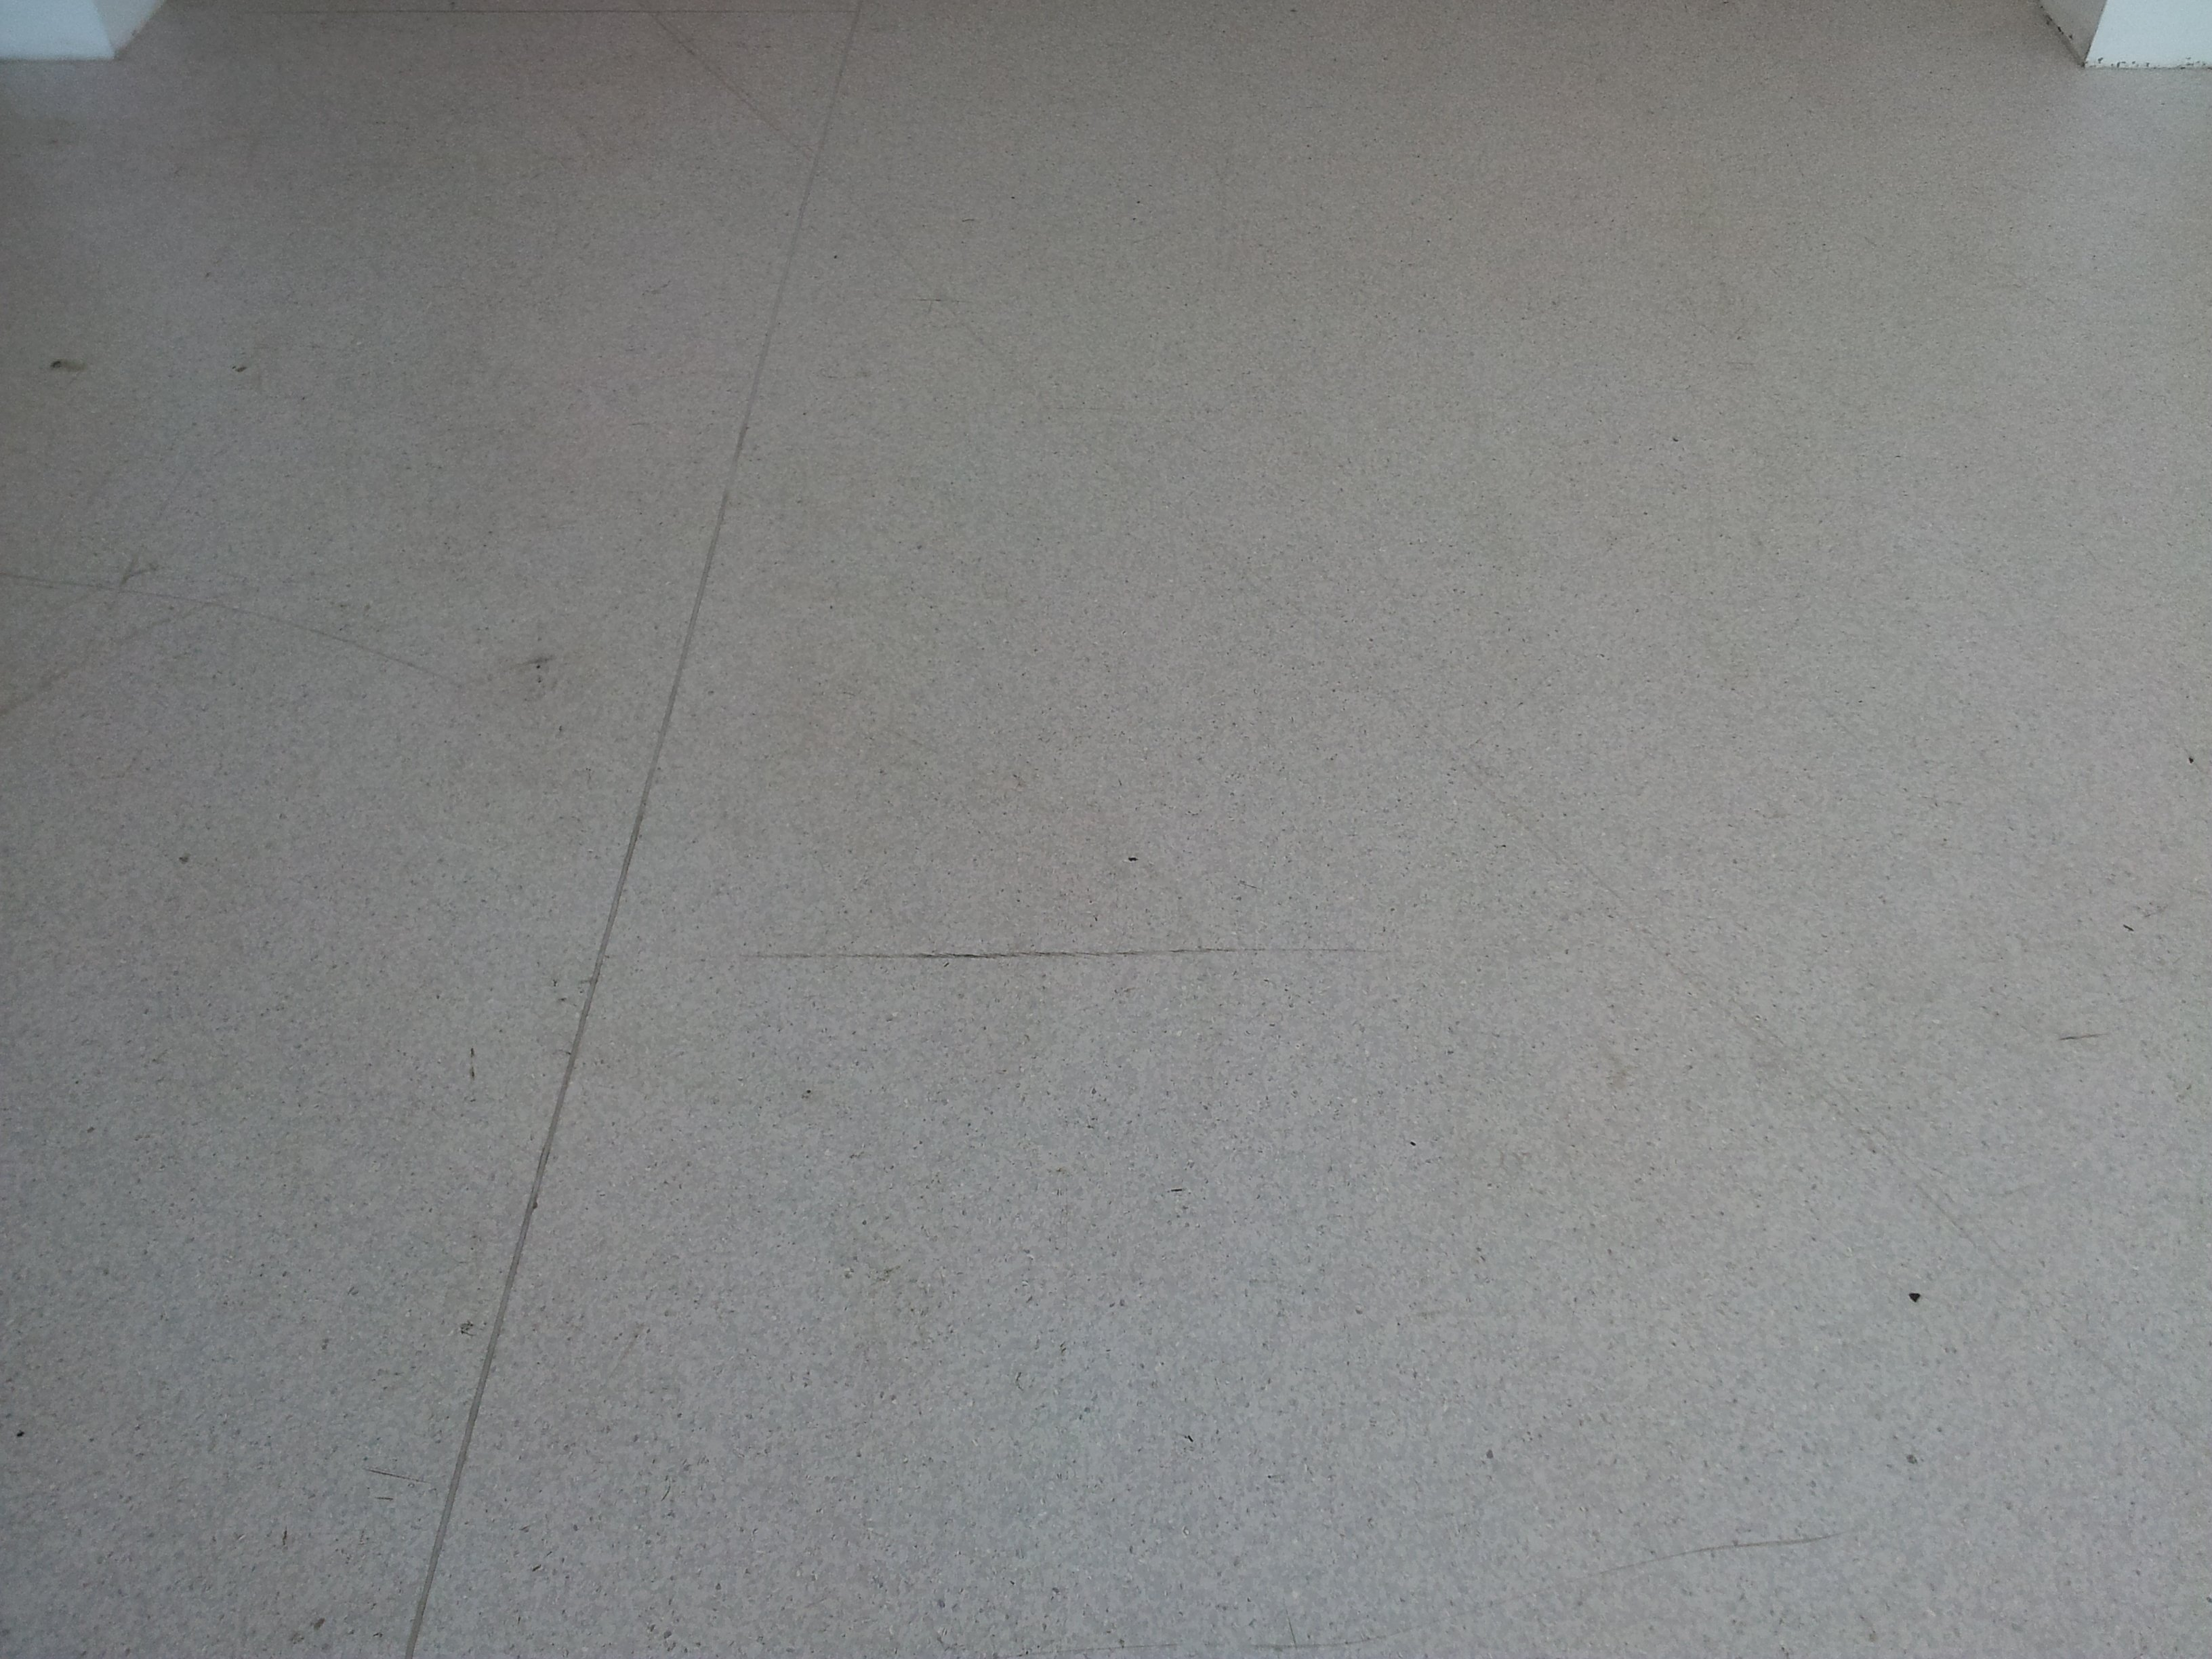 Commercial hard floor cleaning vinyl marmoleum concrete vinyl floor cleaning oxford dailygadgetfo Image collections